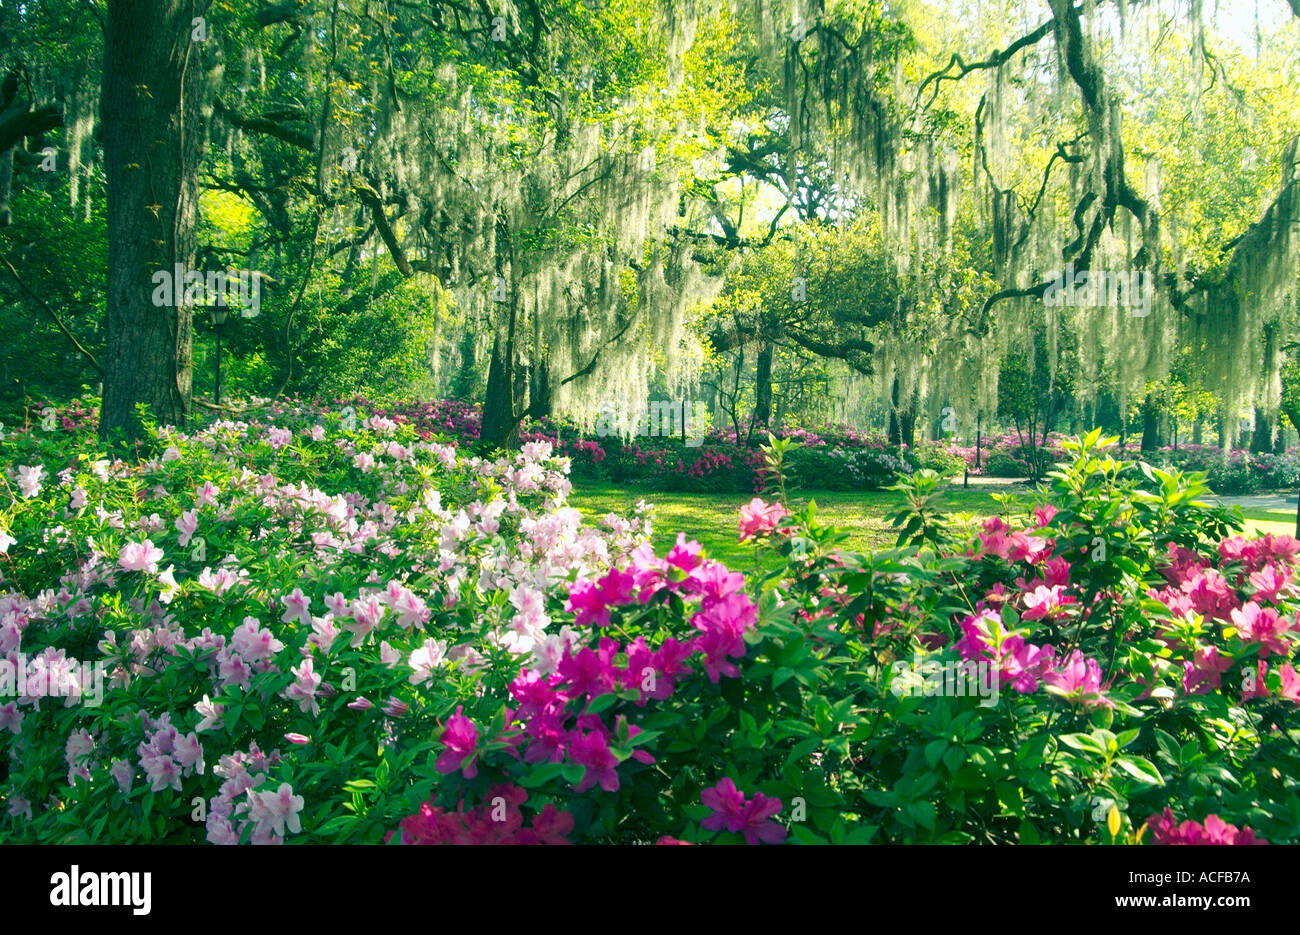 Azalea Blossoms And Spanish Moss In The Parks Of Savannah Georgia